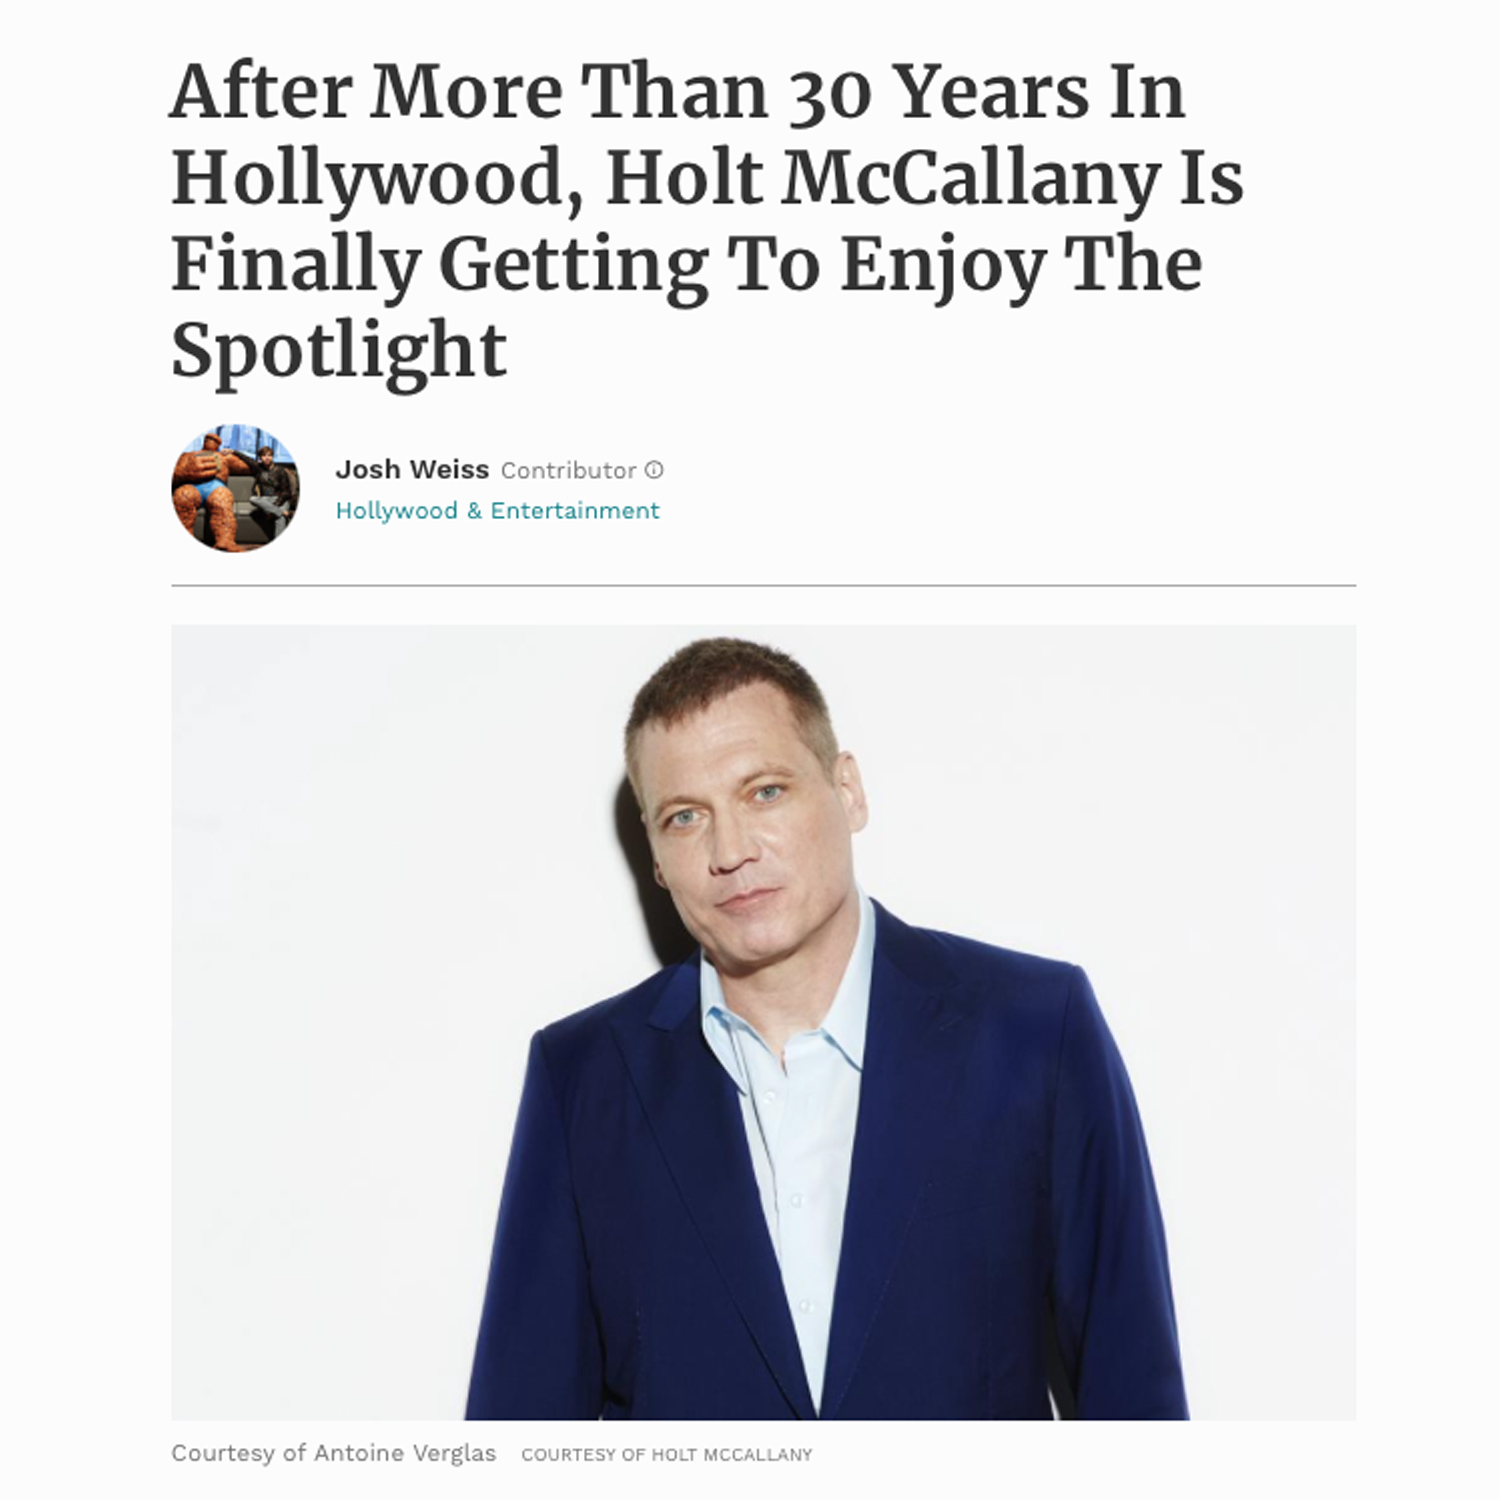 http://holtmccallany.com/wp-content/uploads/2021/05/HoltMcCallanyForbes.jpg